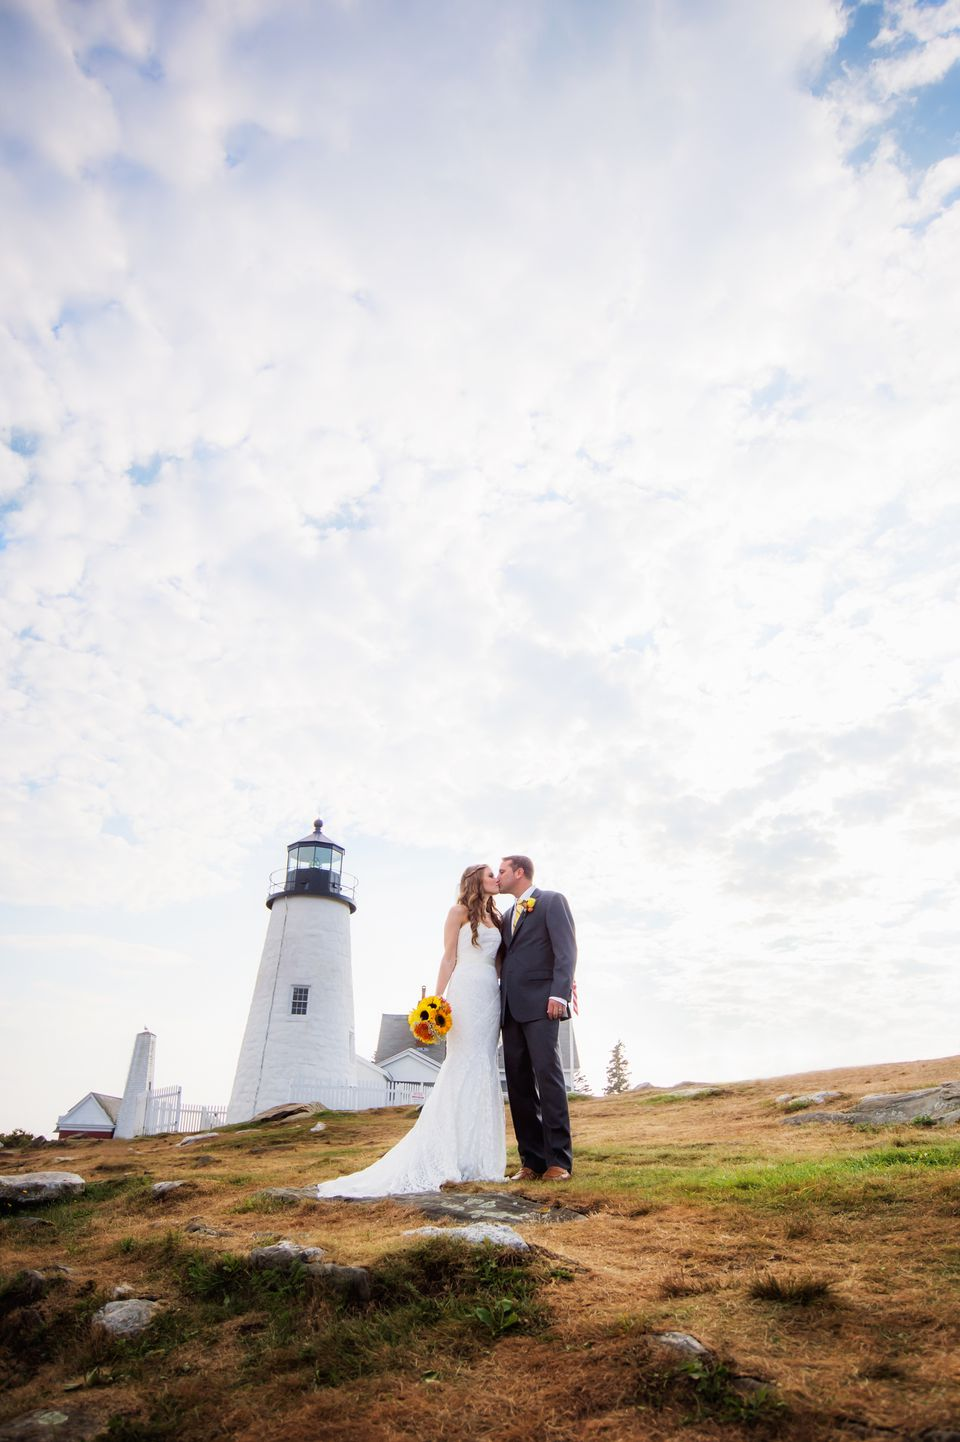 USA, Maine, Bristol, Portrait of married couple kissing, lighthouse in background